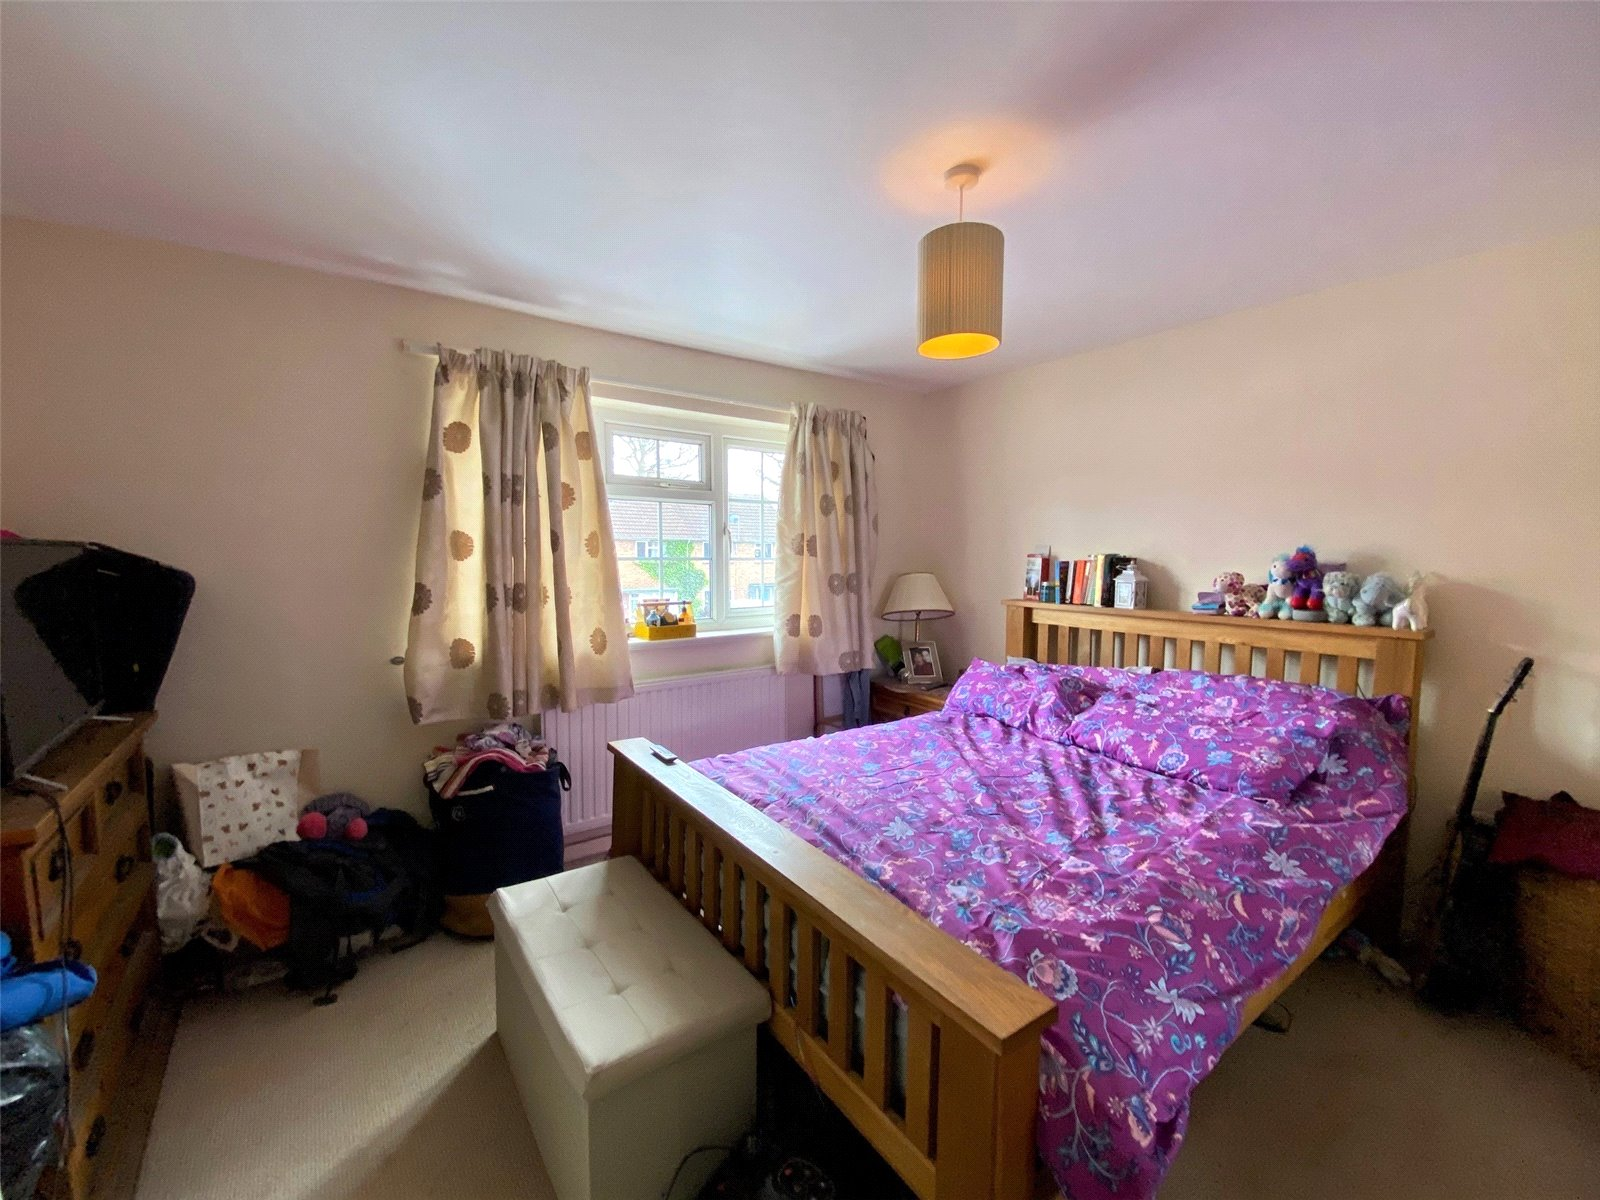 3 bed house to rent in Bricket Wood, AL2 3NB  - Property Image 5